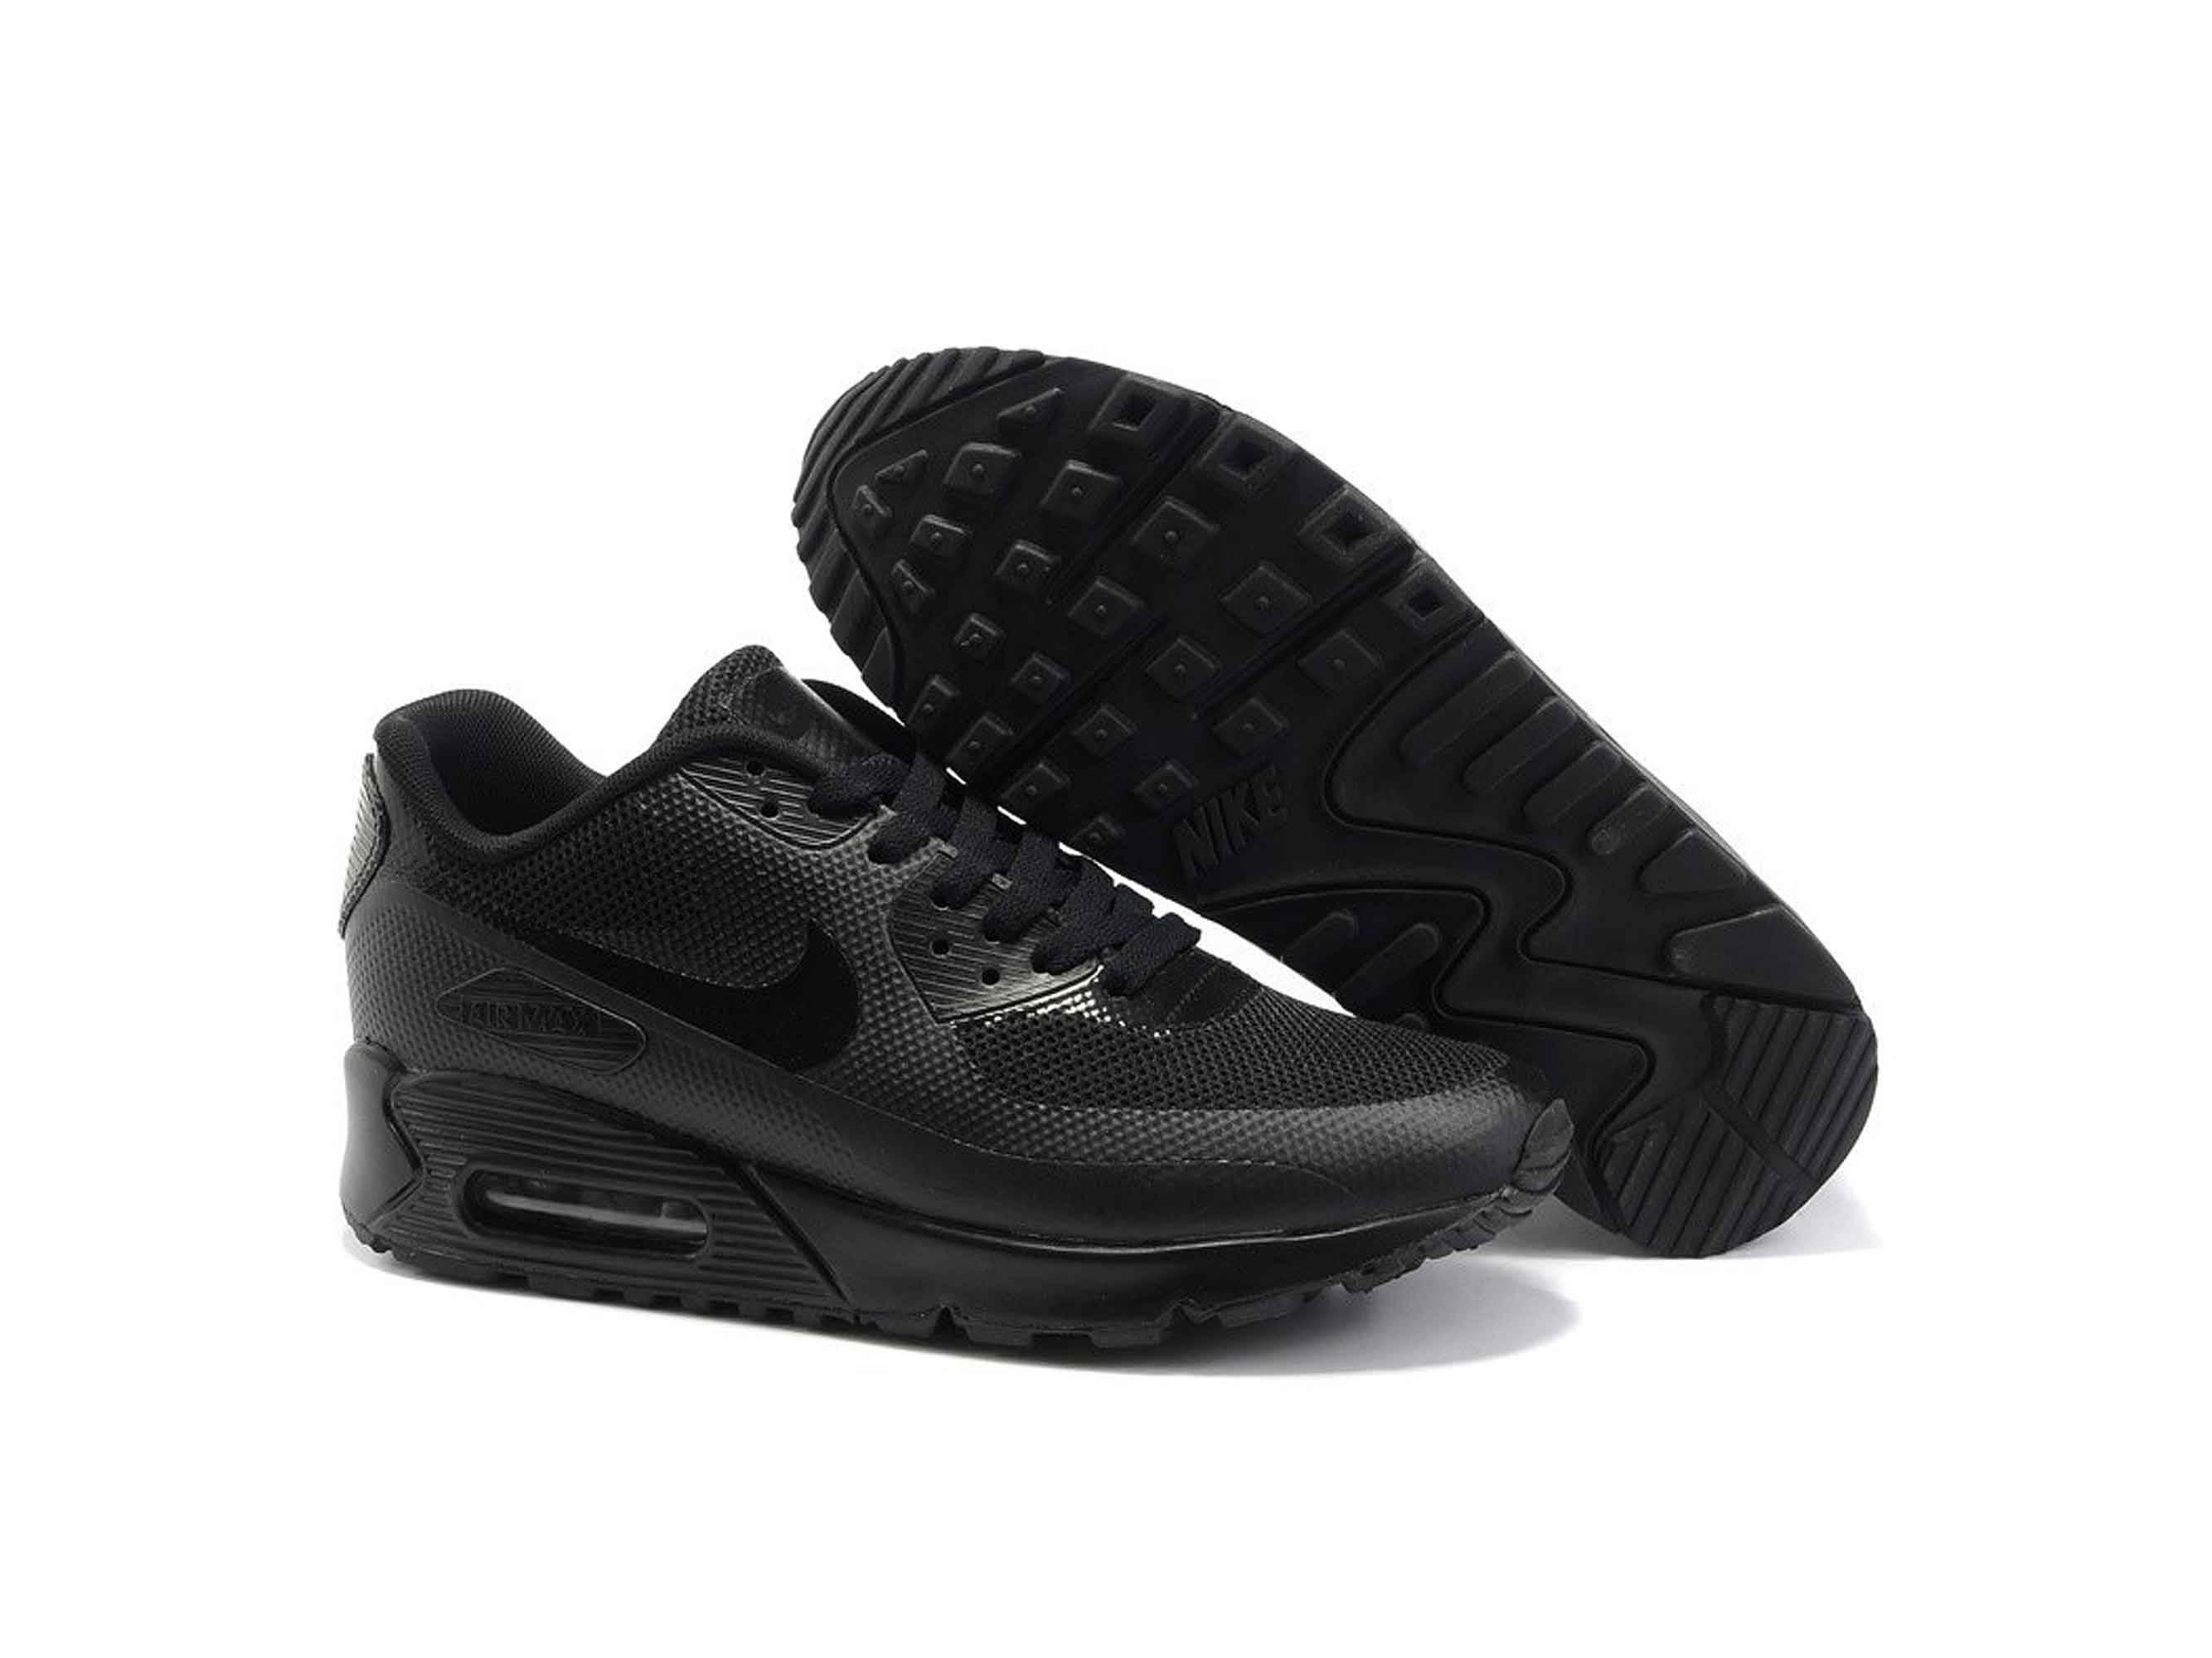 max hyperfuse air black nike 90 2012 TKJ1cFul3